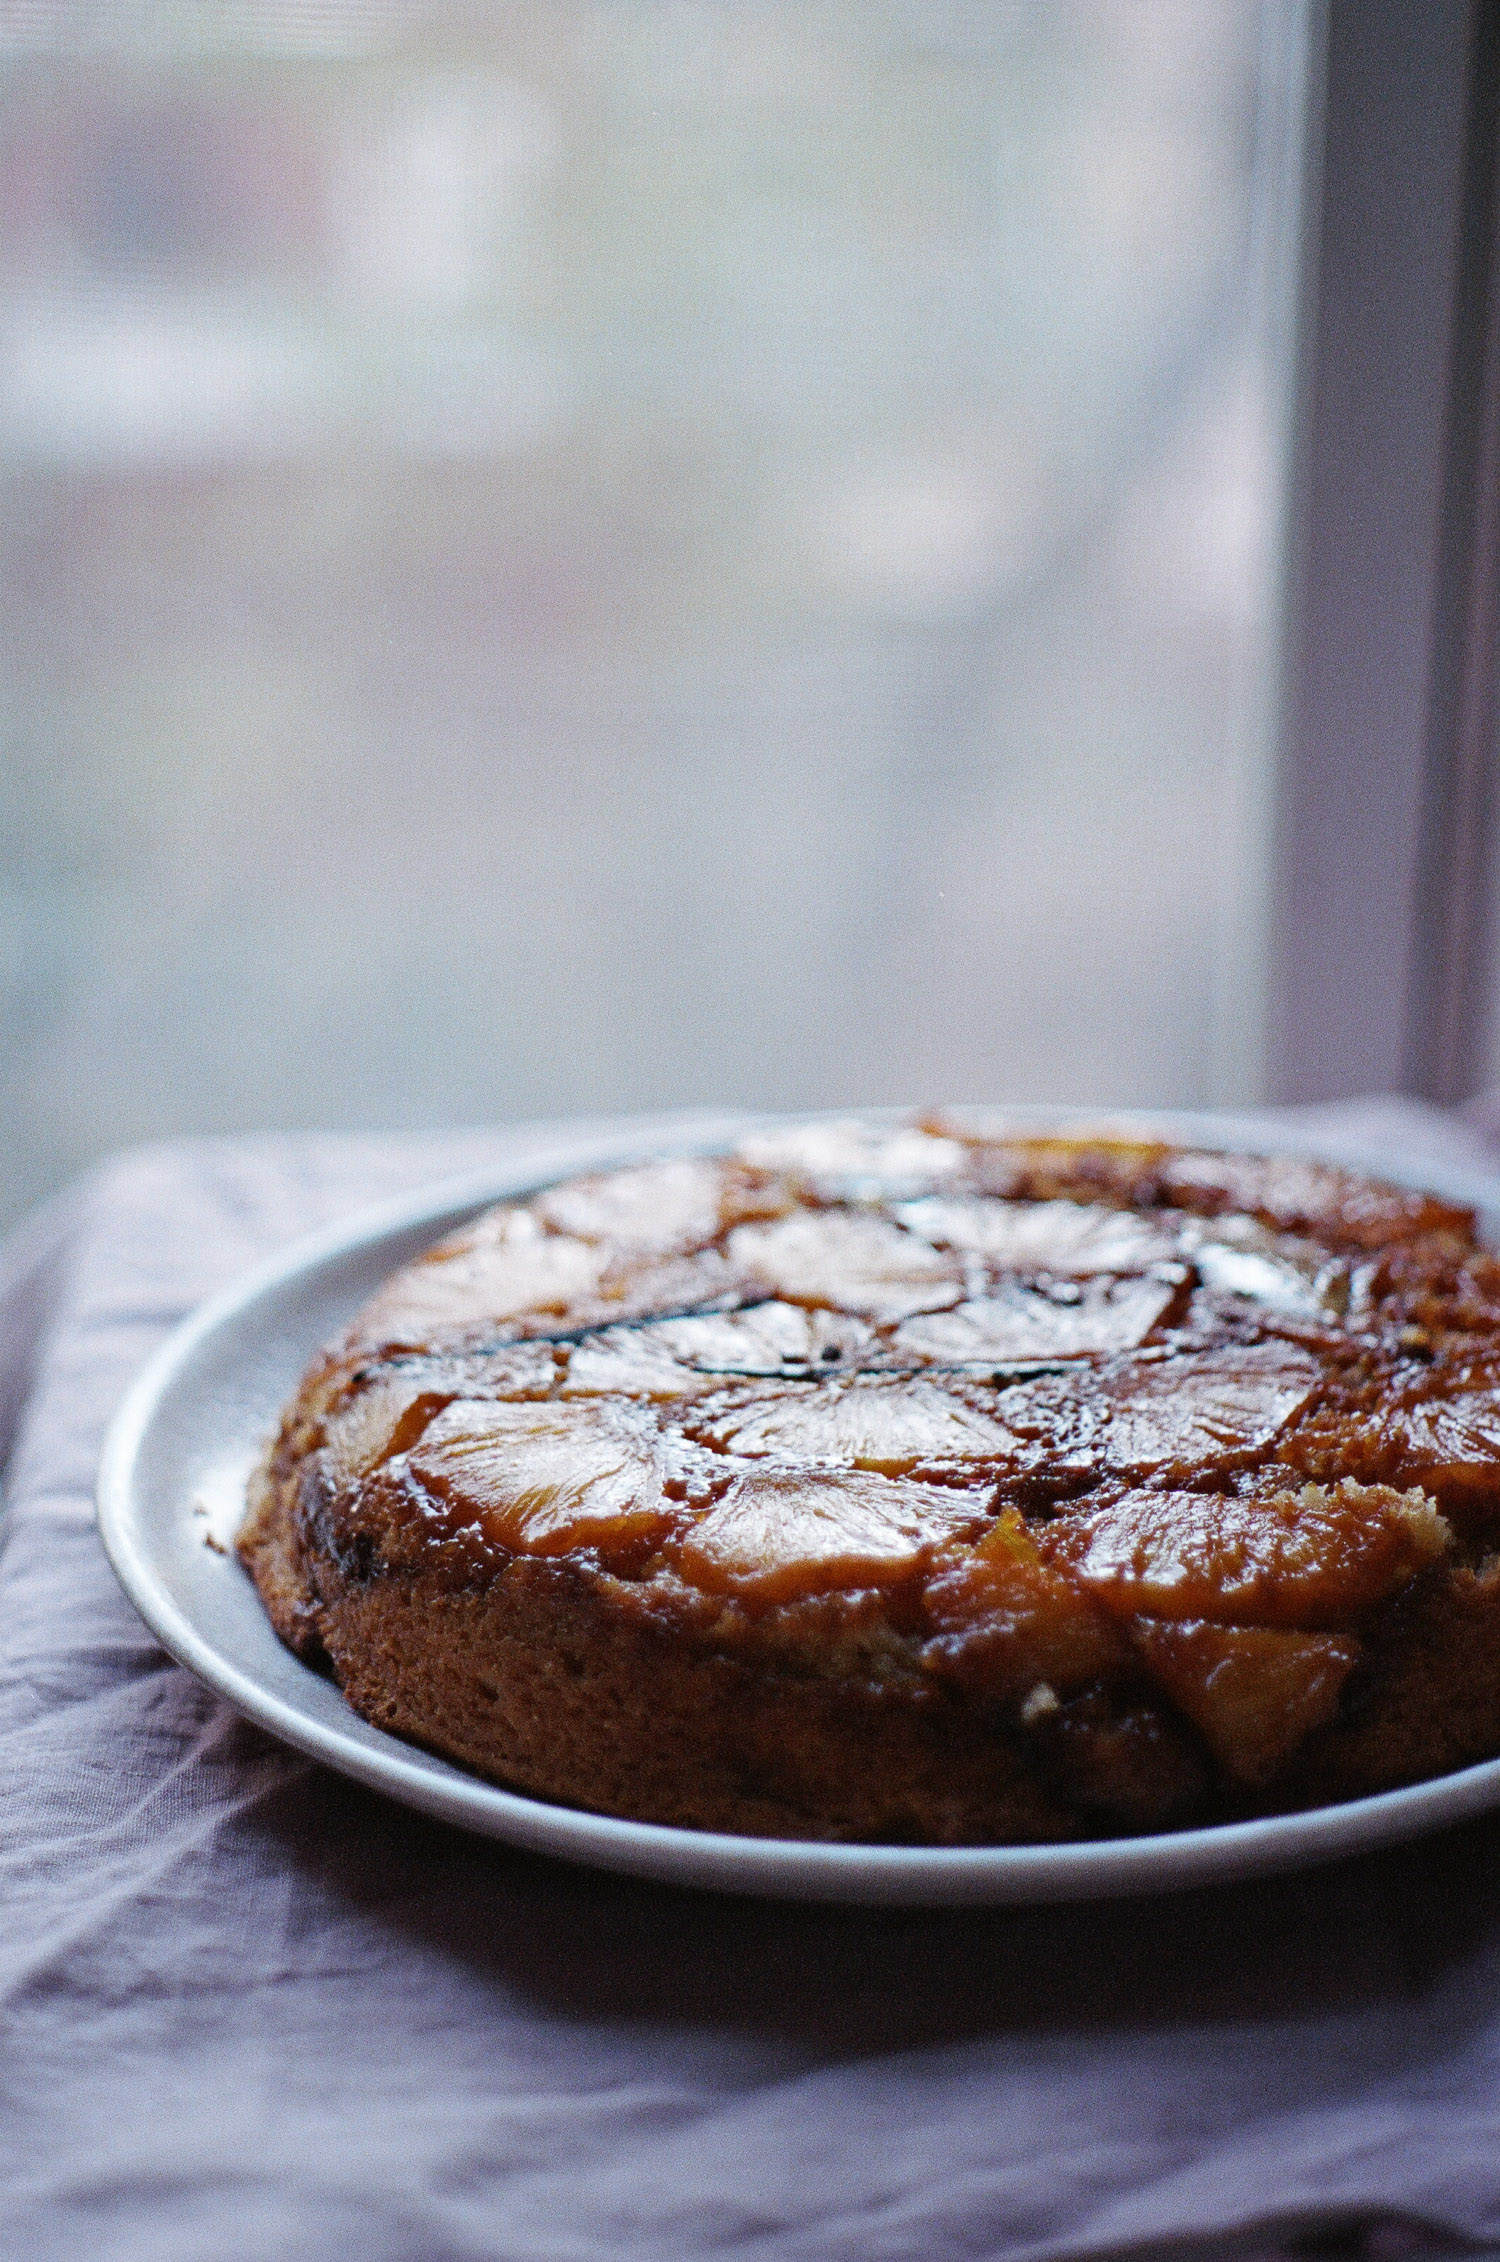 pineapple upside down cake-01910035.jpg